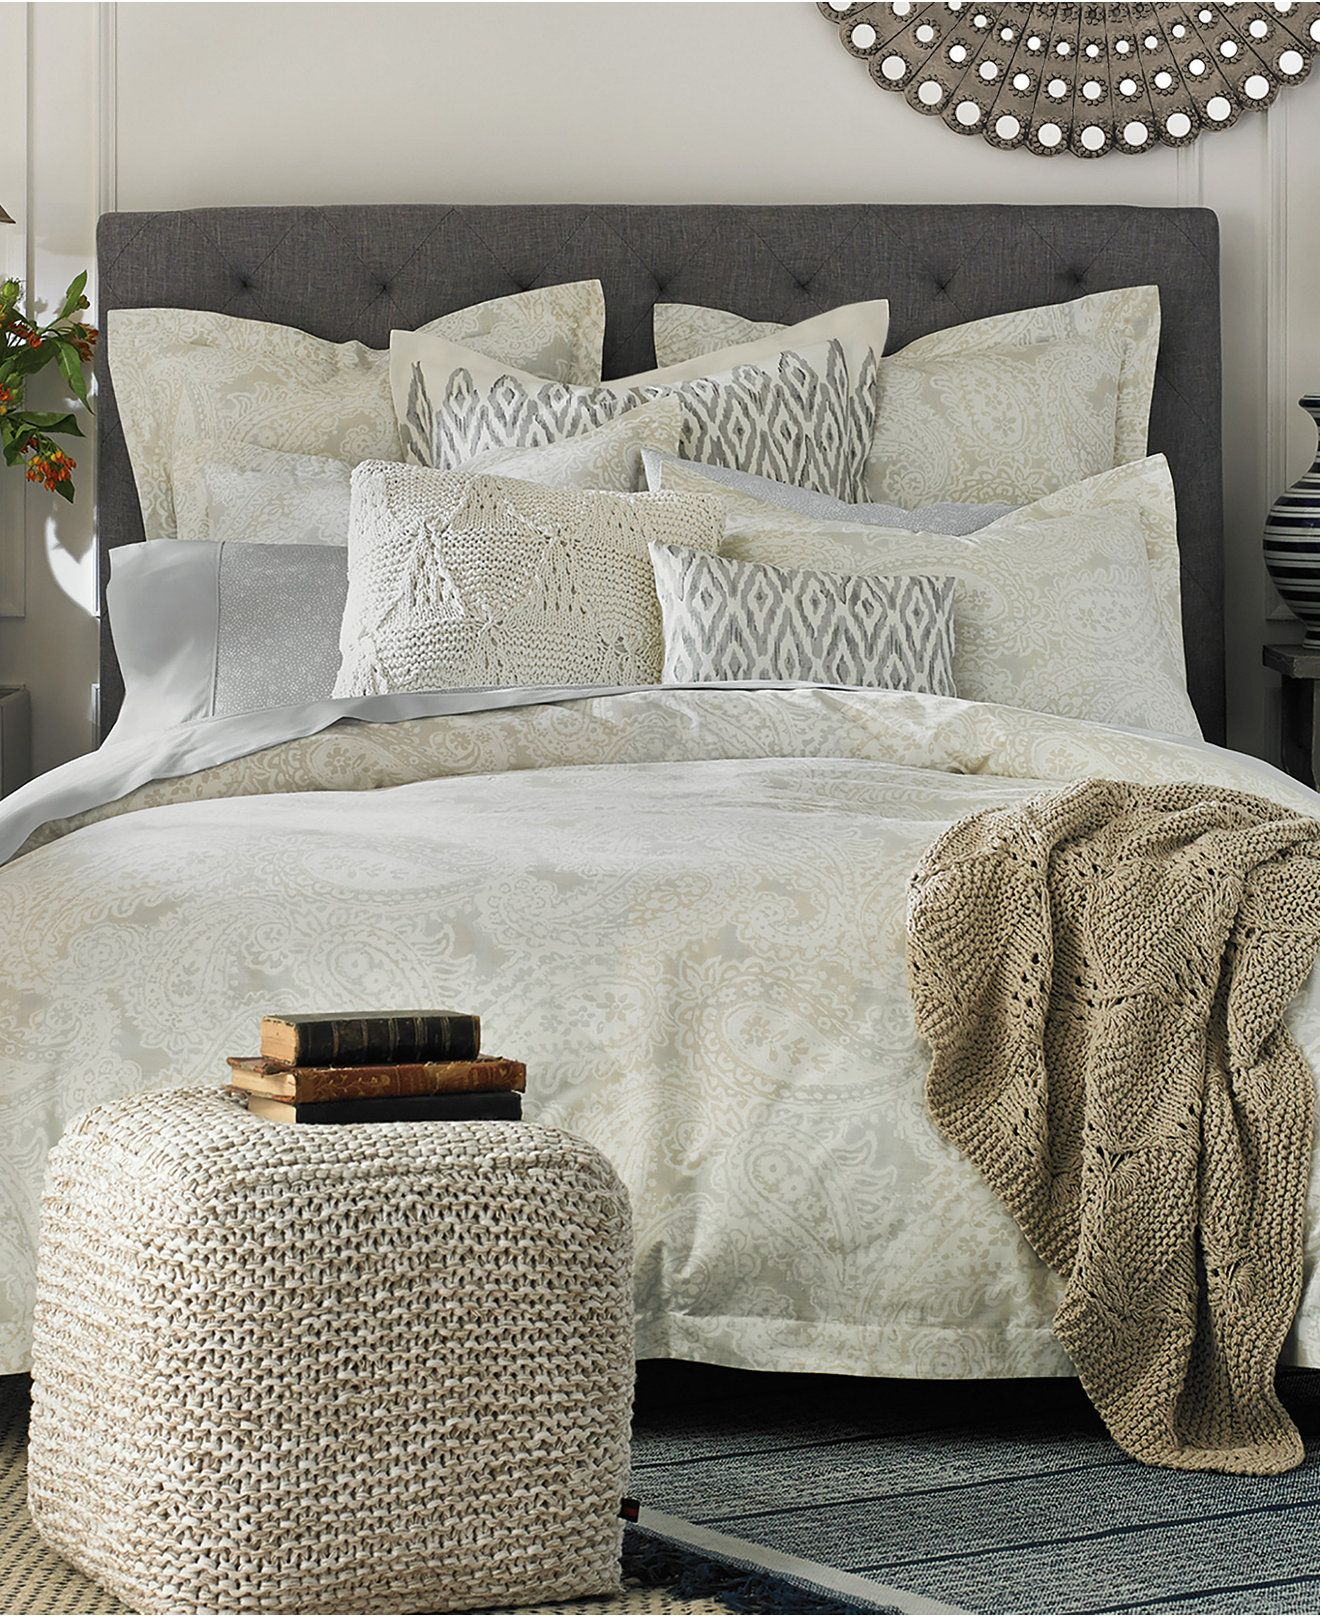 Master Bedroom Bedding Collections Anthropologie Copacati Duvet Cover On Shopstyle Trending Now